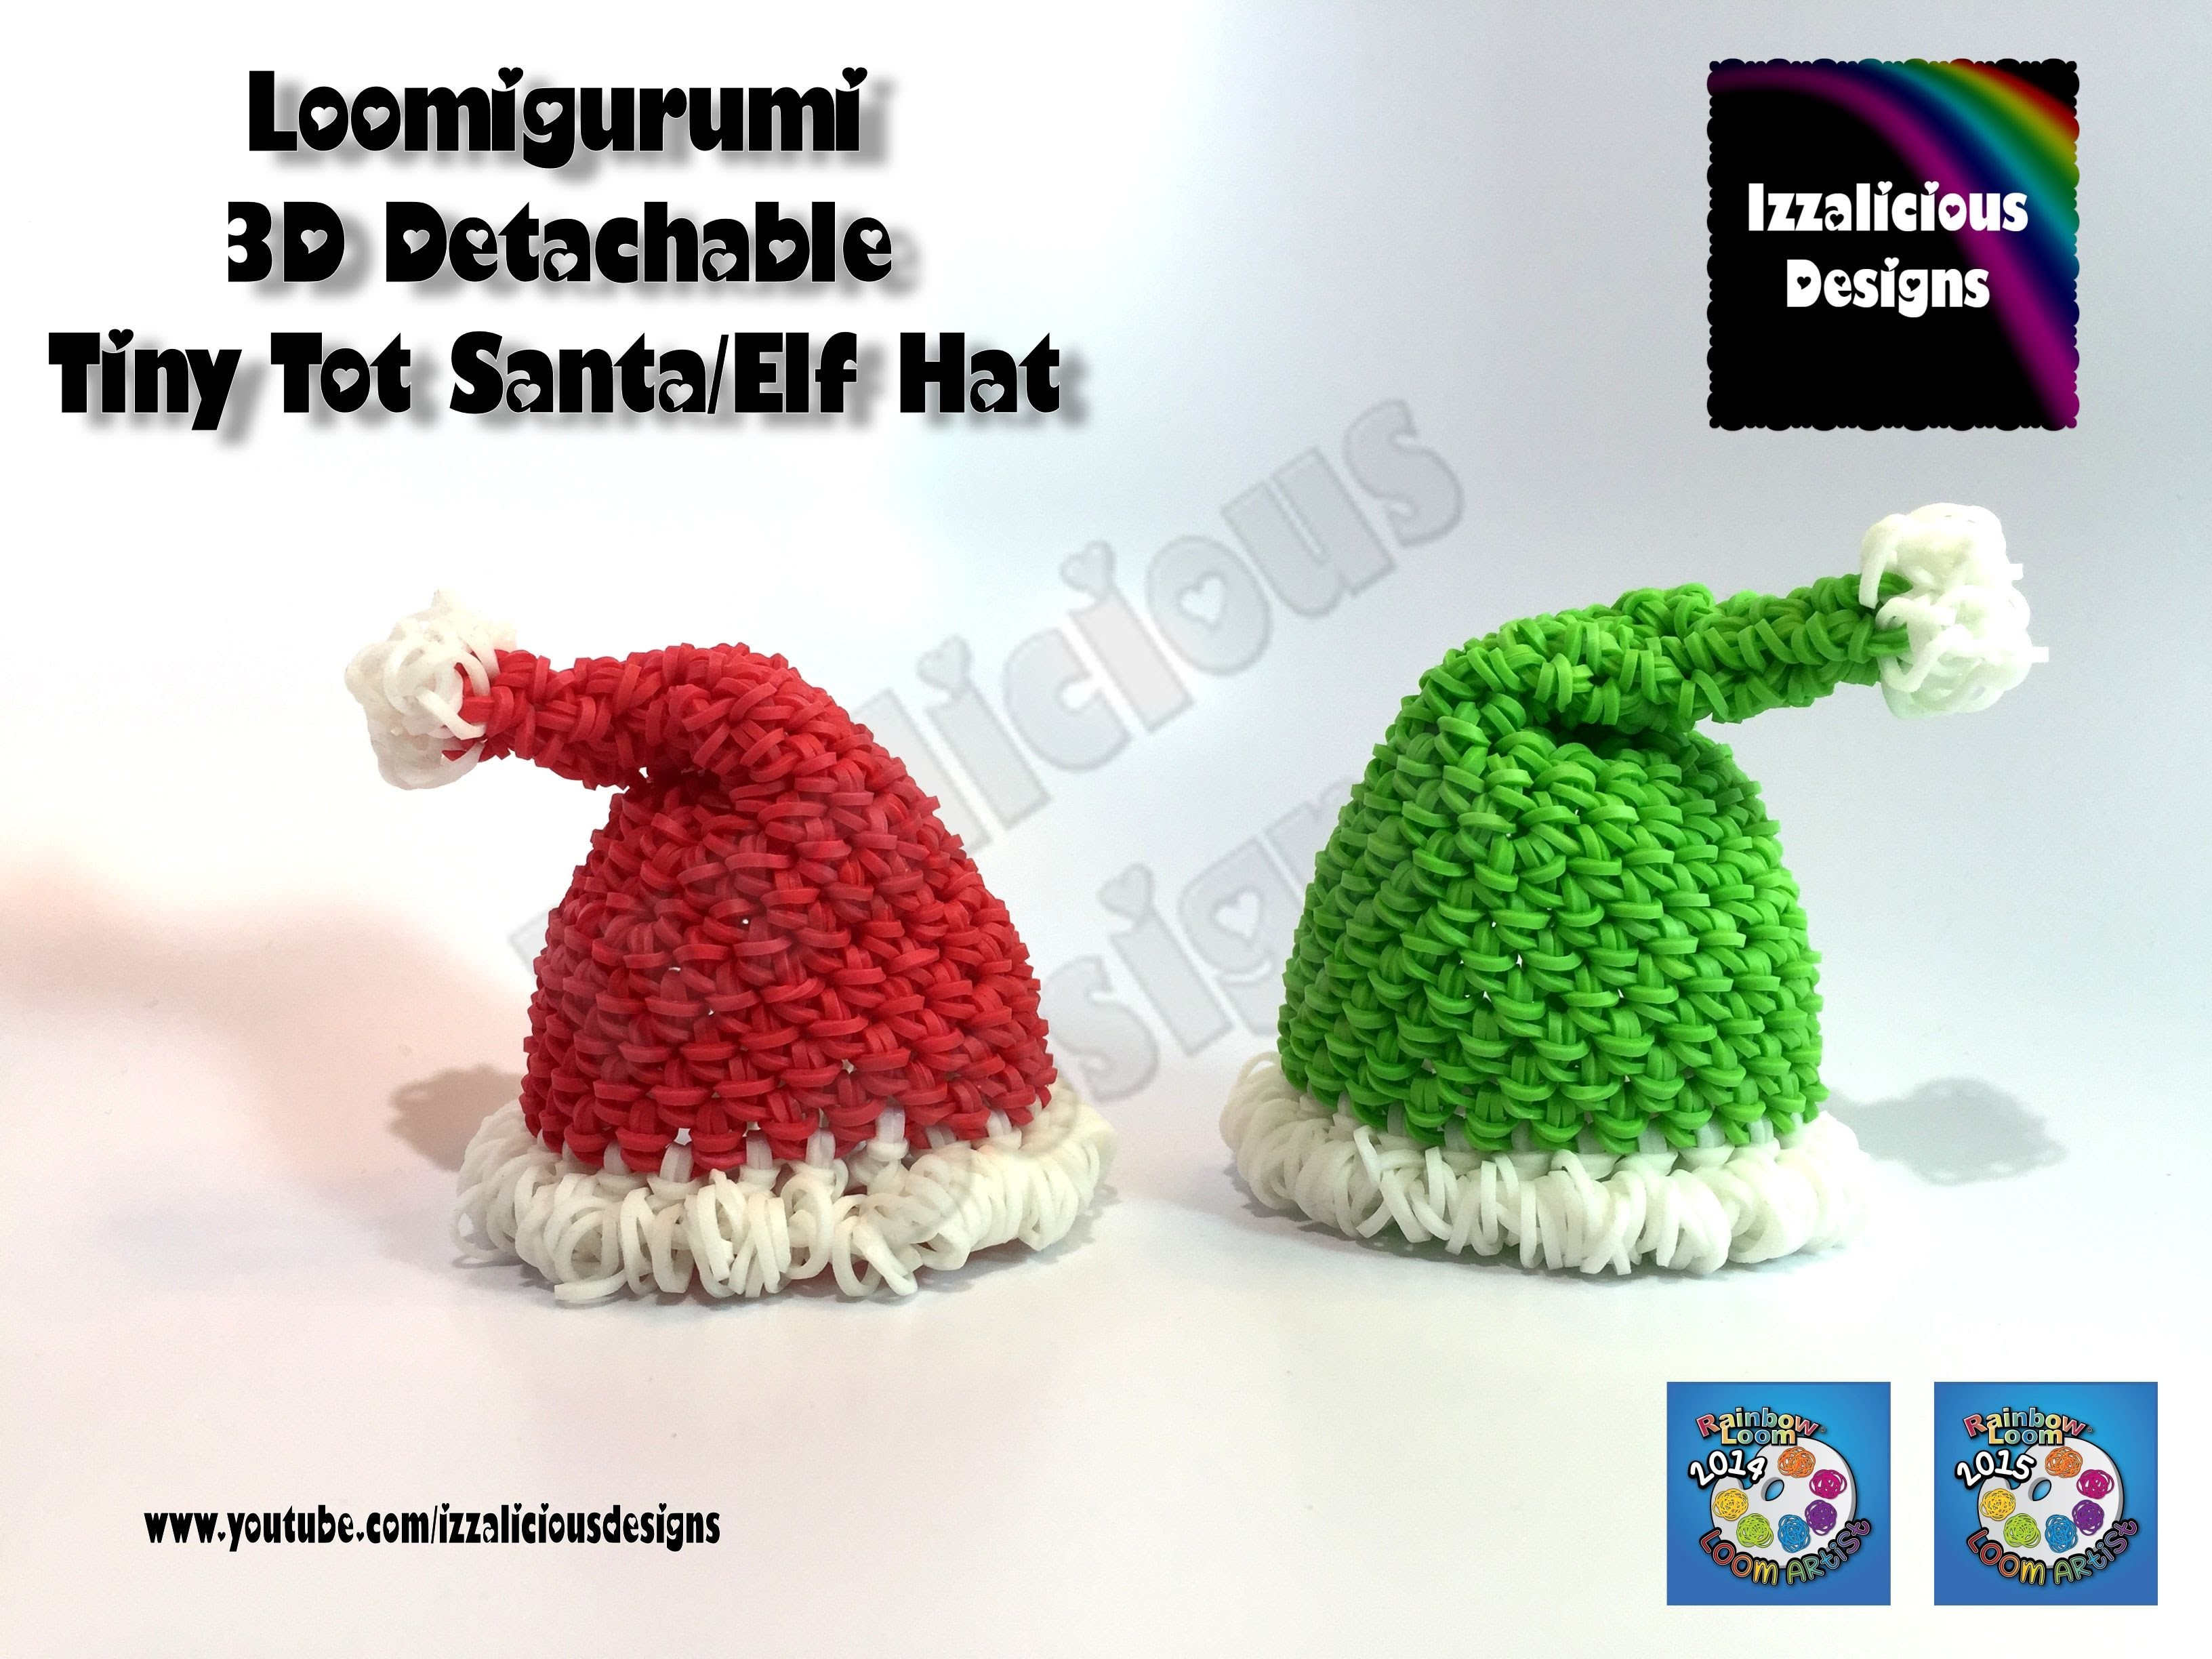 Rainbow Loom Loomigurumi Santa Claus | Elf Hat (Pt1) Tiny Tot Christmas Figure w. Rainbow Loom Bands